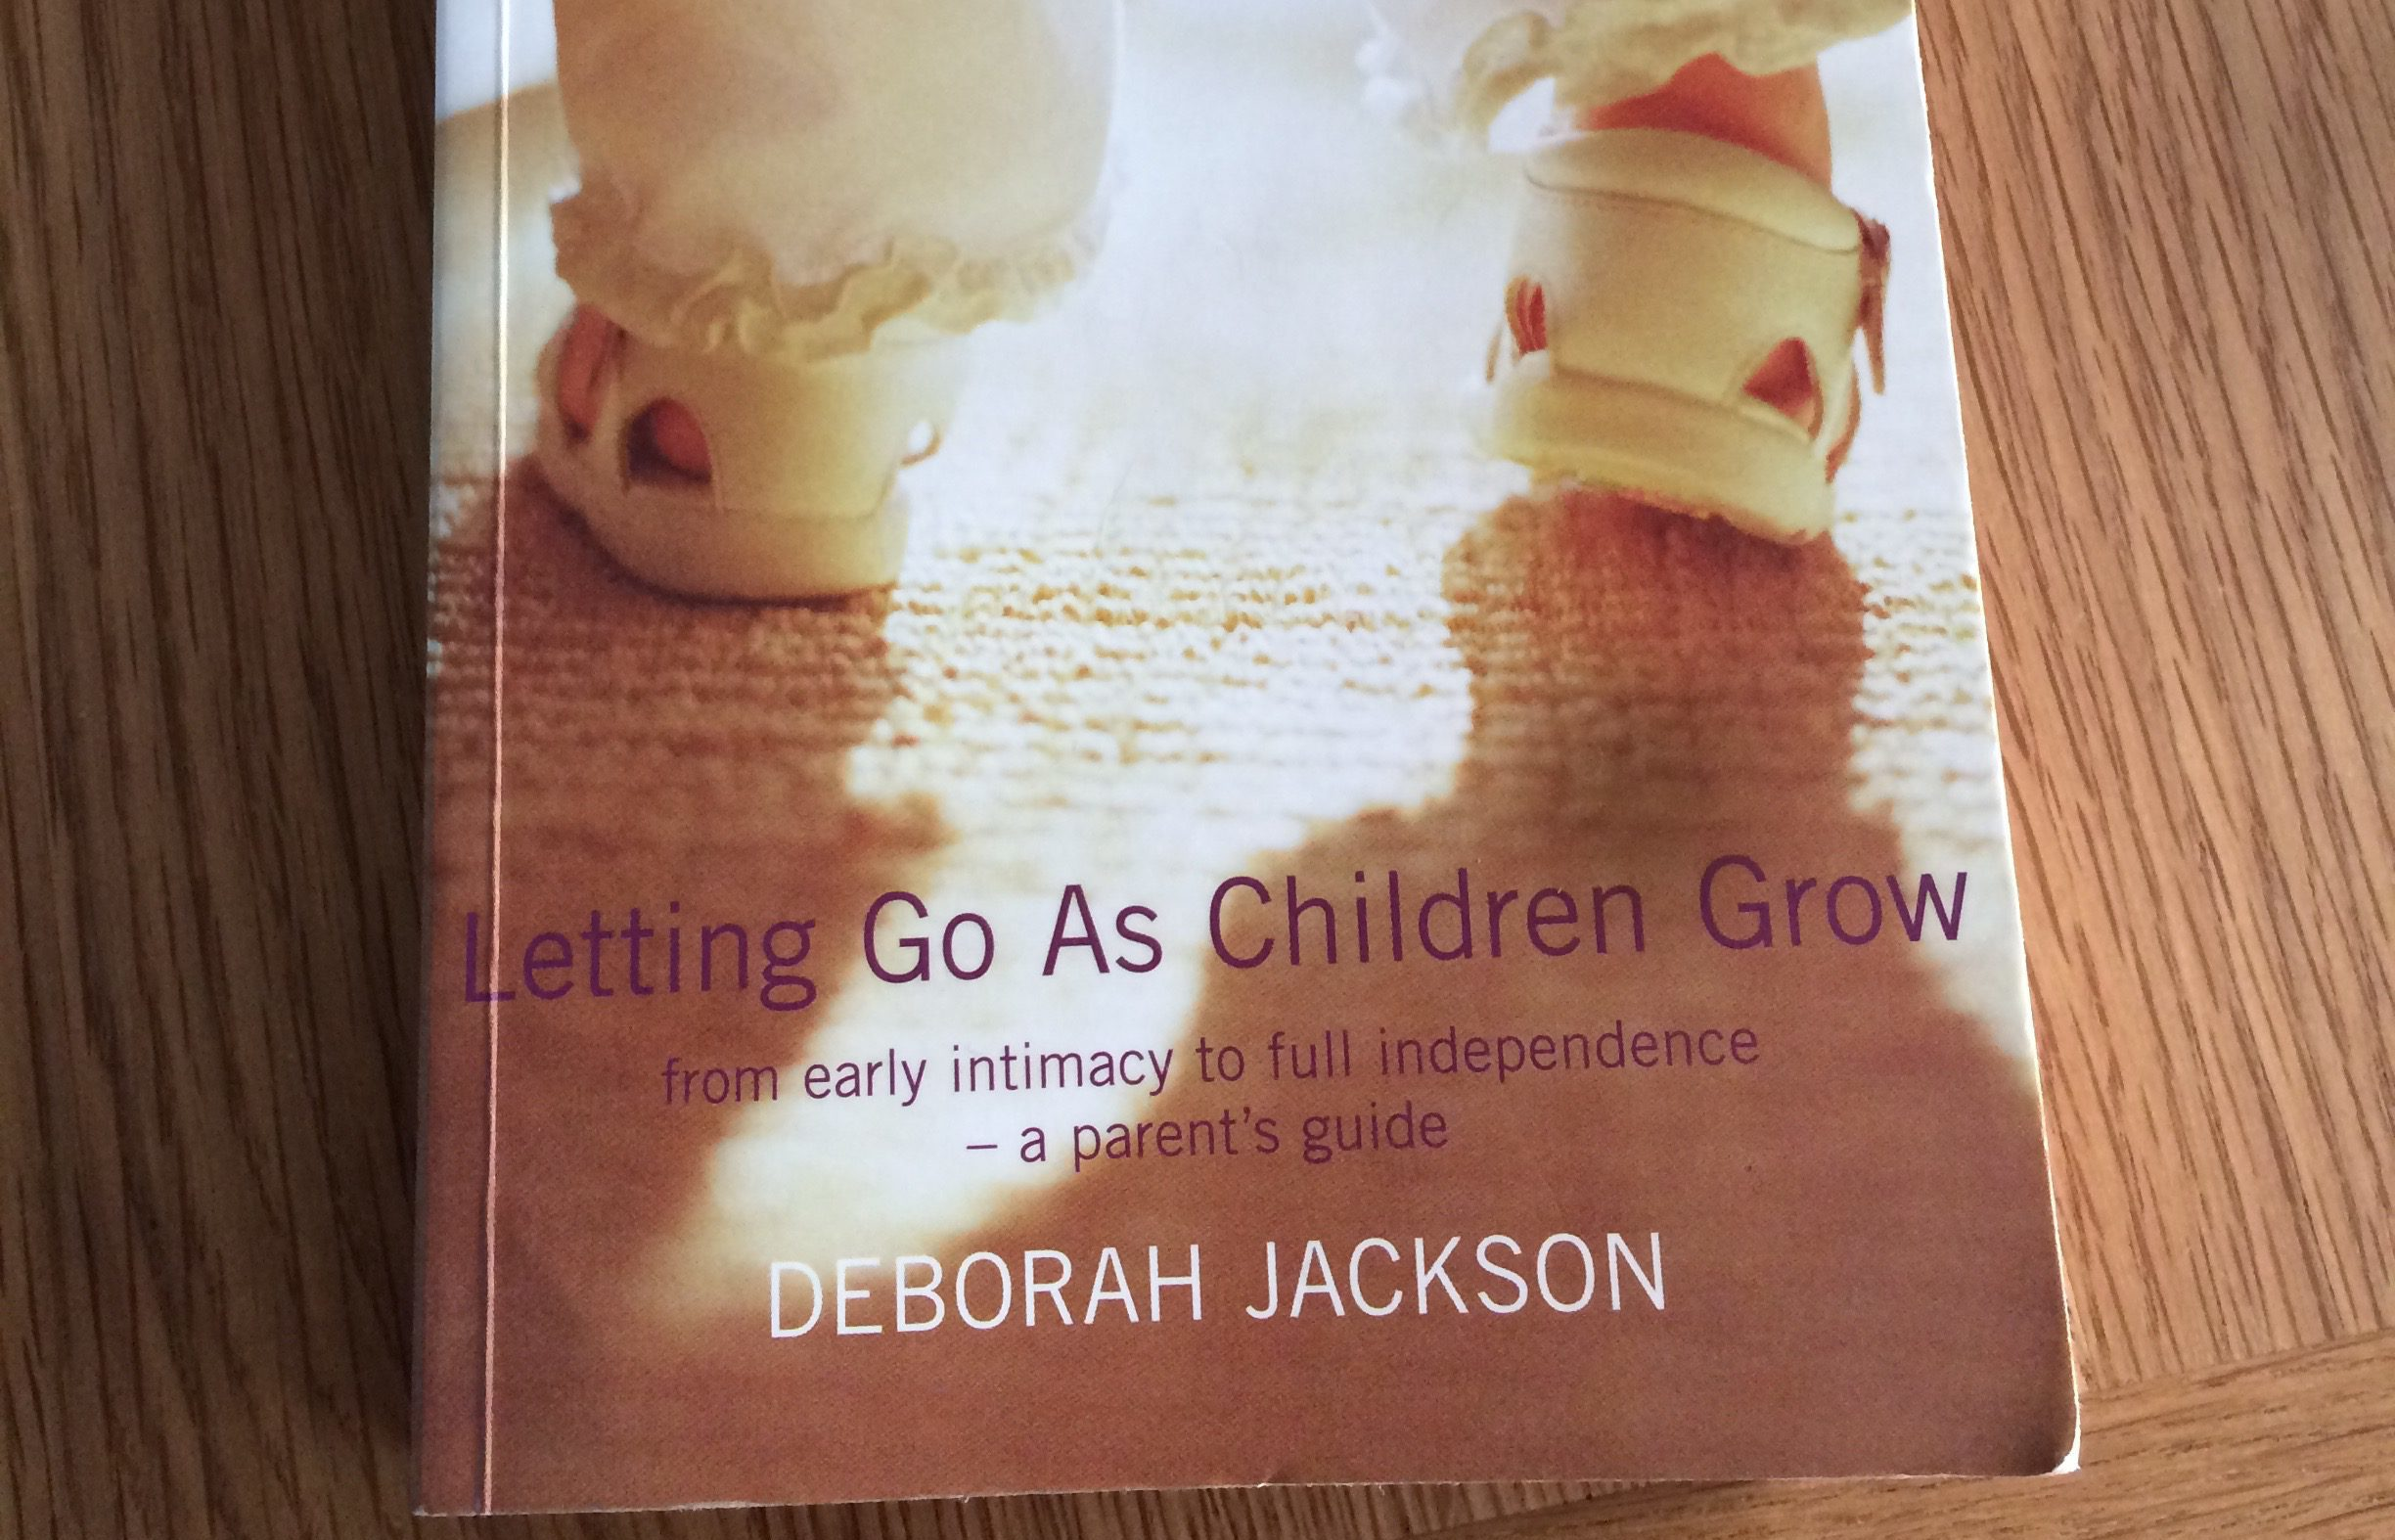 Letting Go As Children Grow, by Deborah Jackson